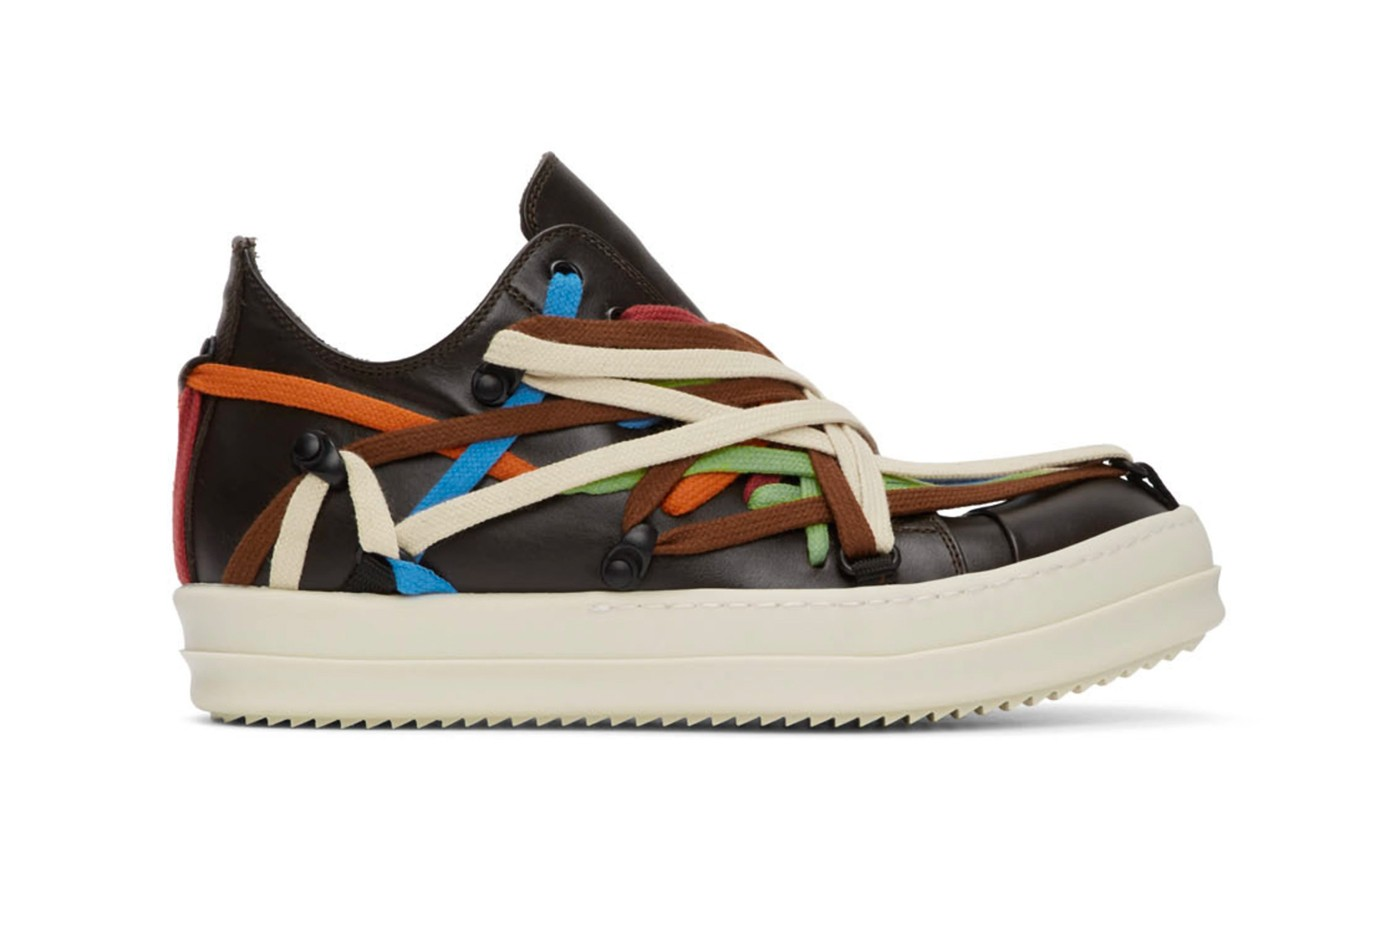 """Rick Owens continues to """"play rope"""" with the Vibrant Multi-colored Lace Sneakers"""